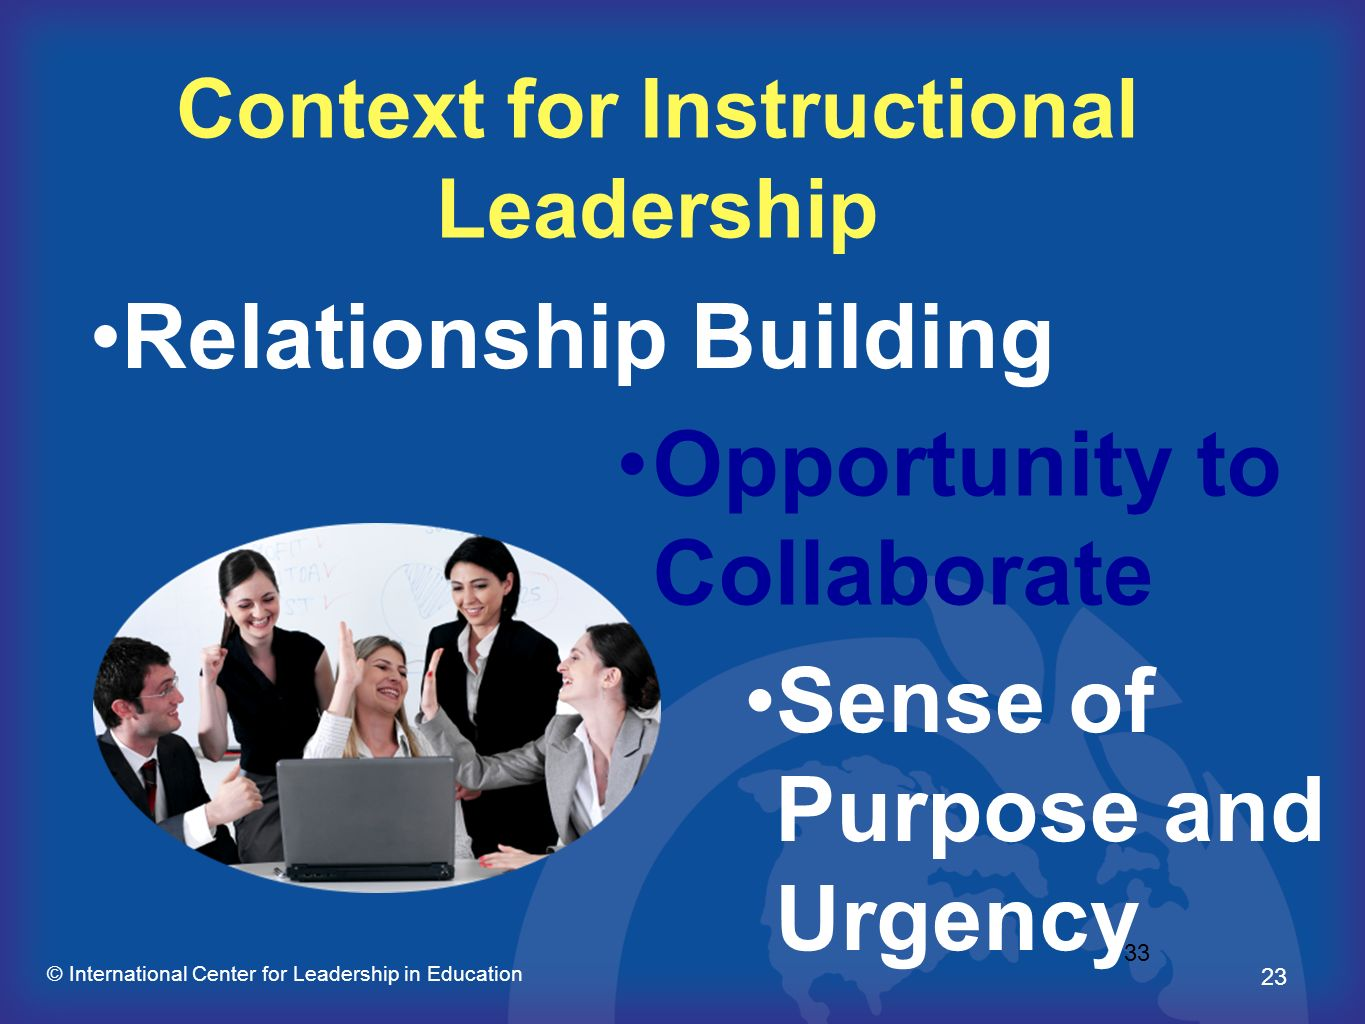 Context for Instructional Leadership